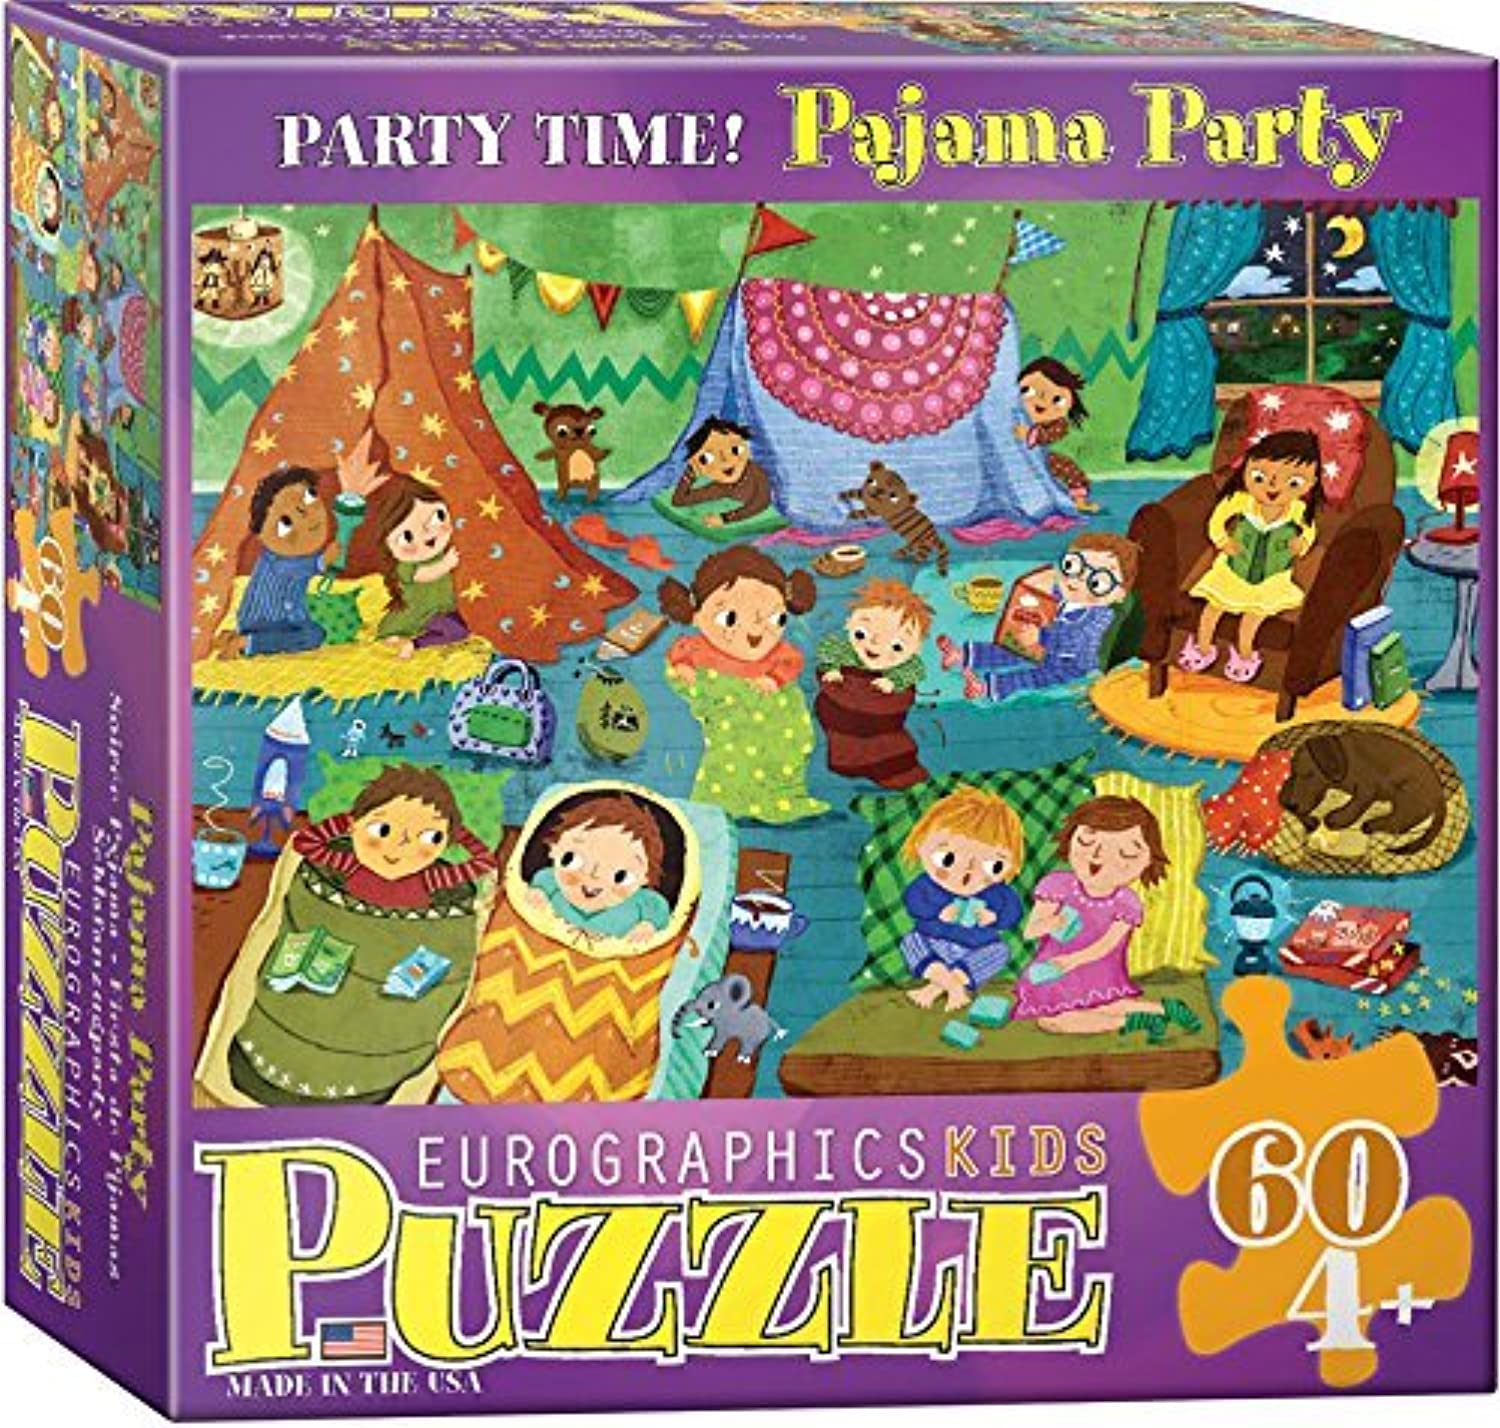 Party Time Pajama 60 Piece Puzzle by EuroGraphics